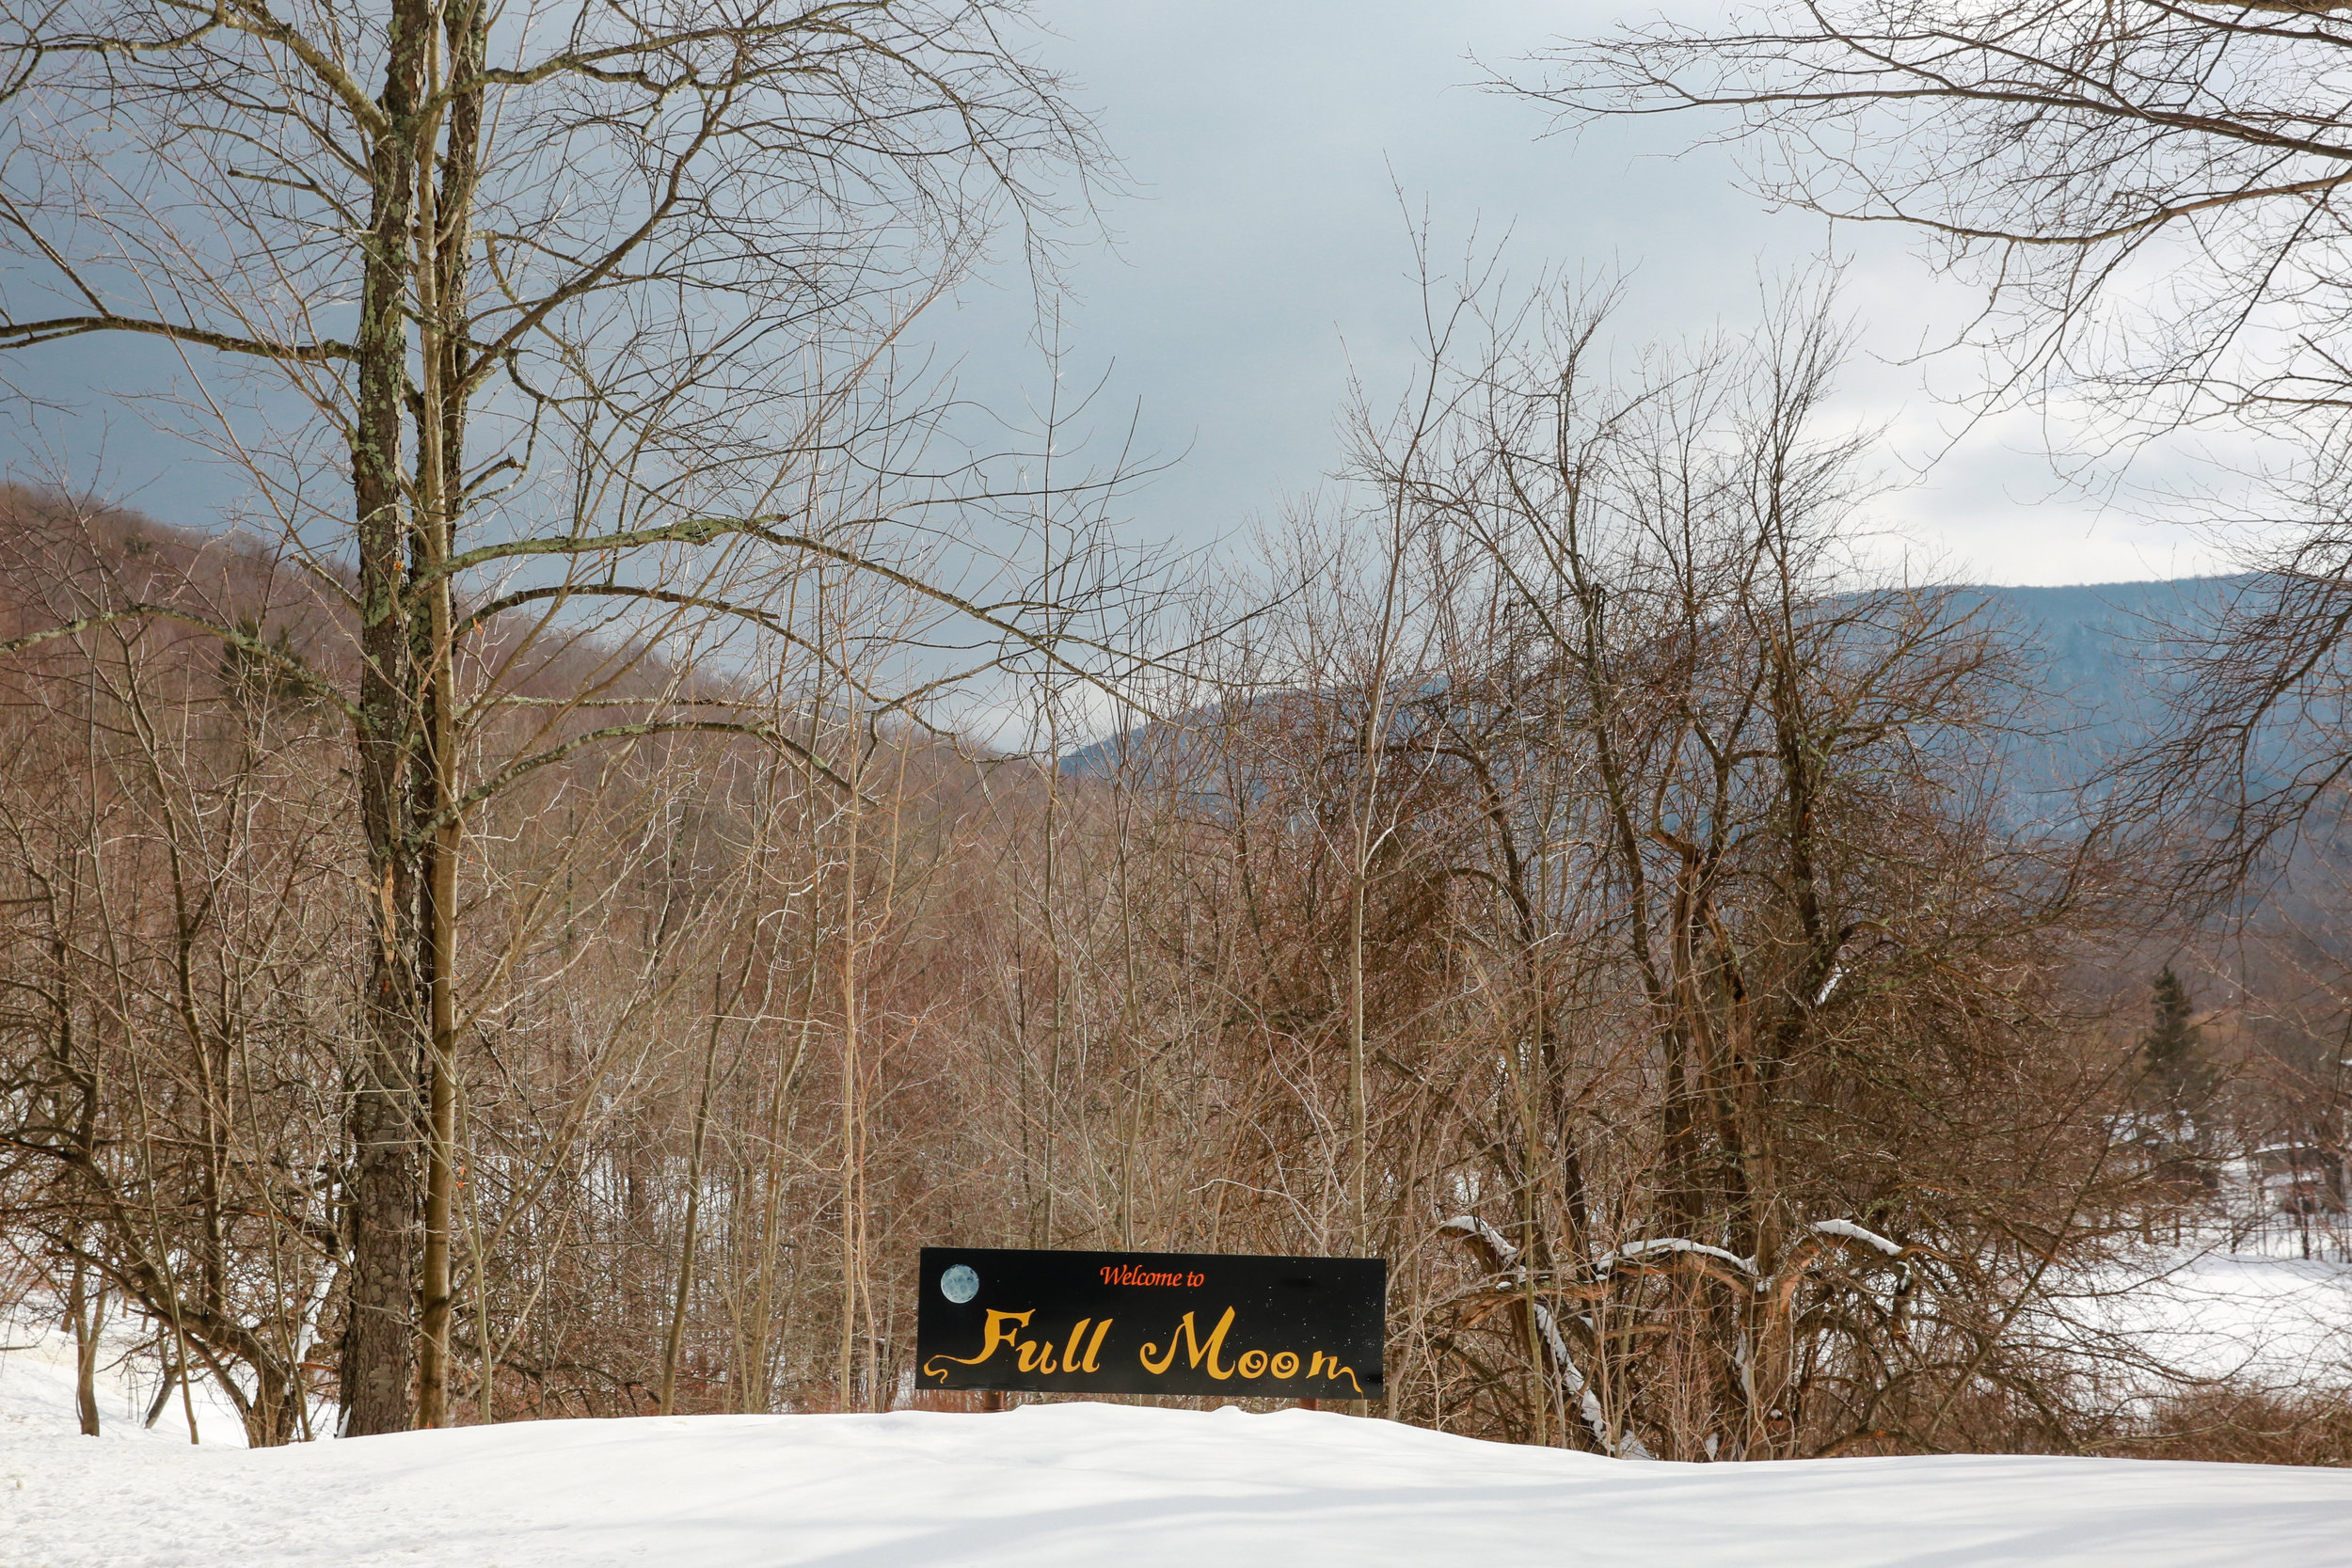 The Full Moon Resort in Big Indian, NY